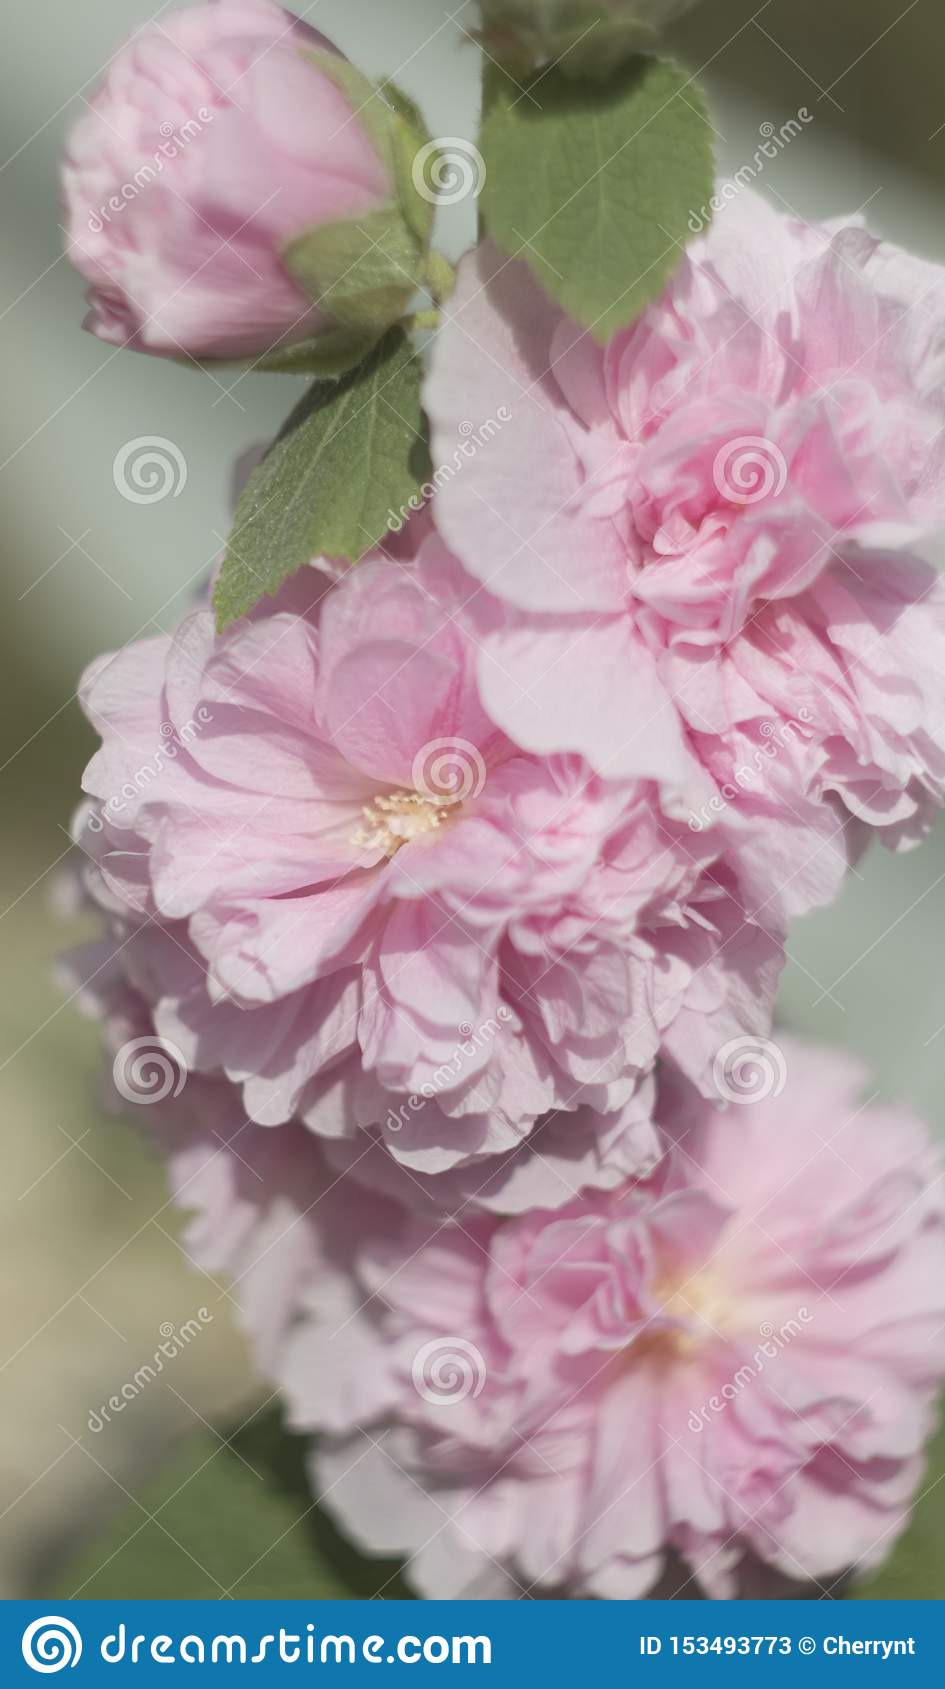 Pink flowers, on a blurry background, roses